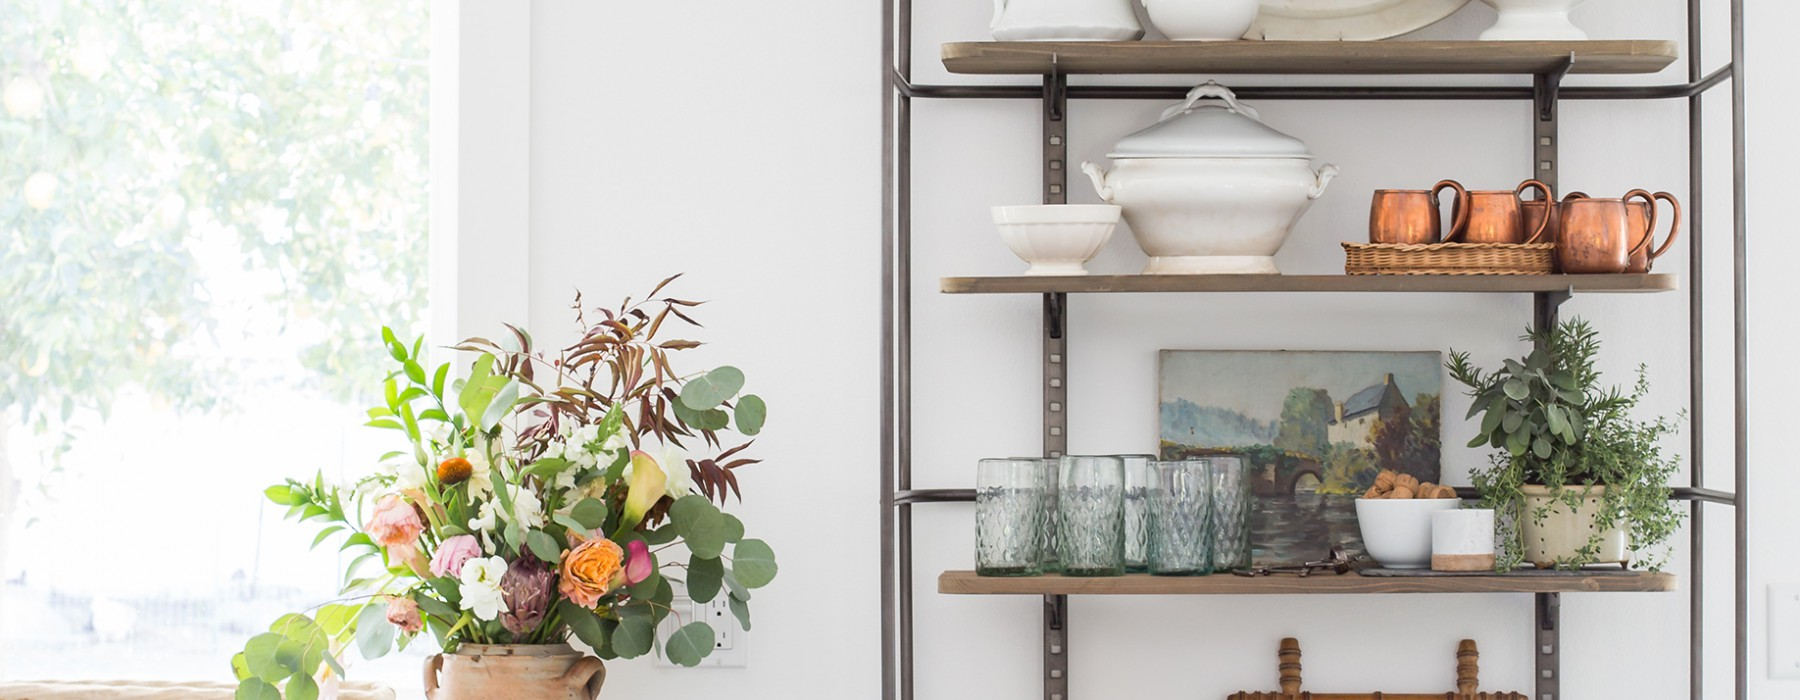 Heather Bullard's French Country Display Cabinet